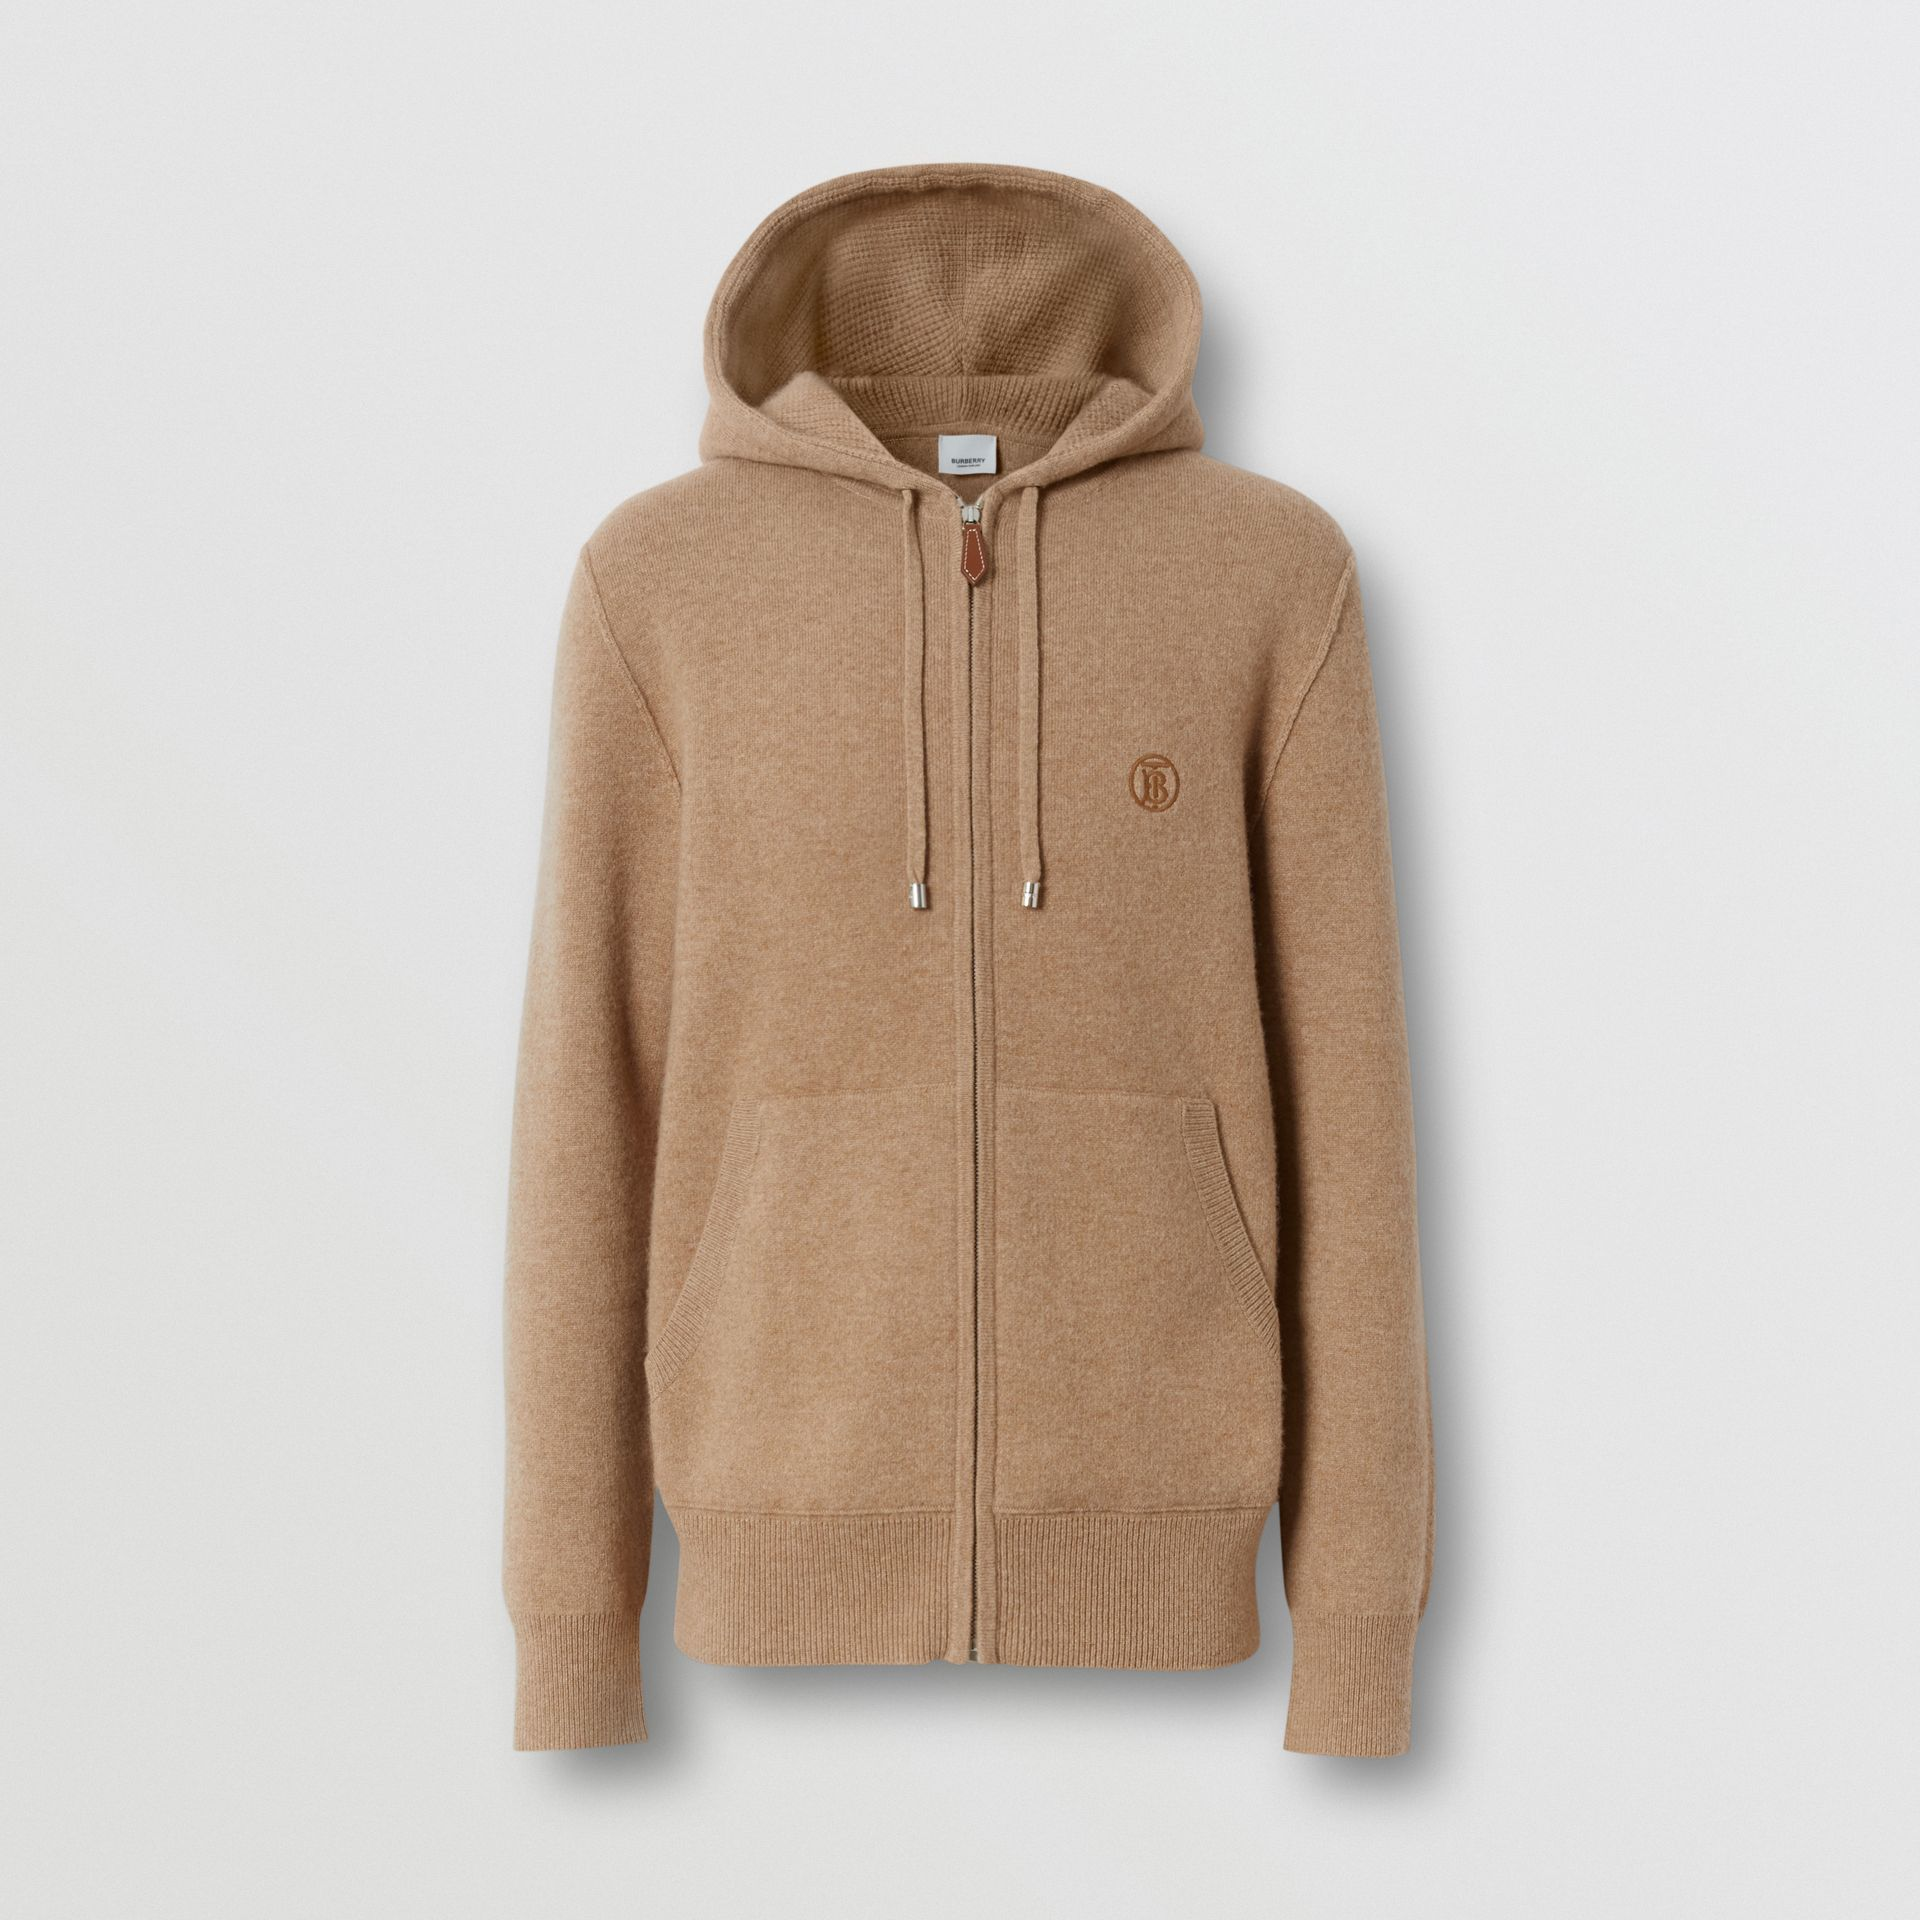 Monogram Motif Cashmere Blend Hooded Top in Pale Coffee - Men | Burberry - gallery image 3